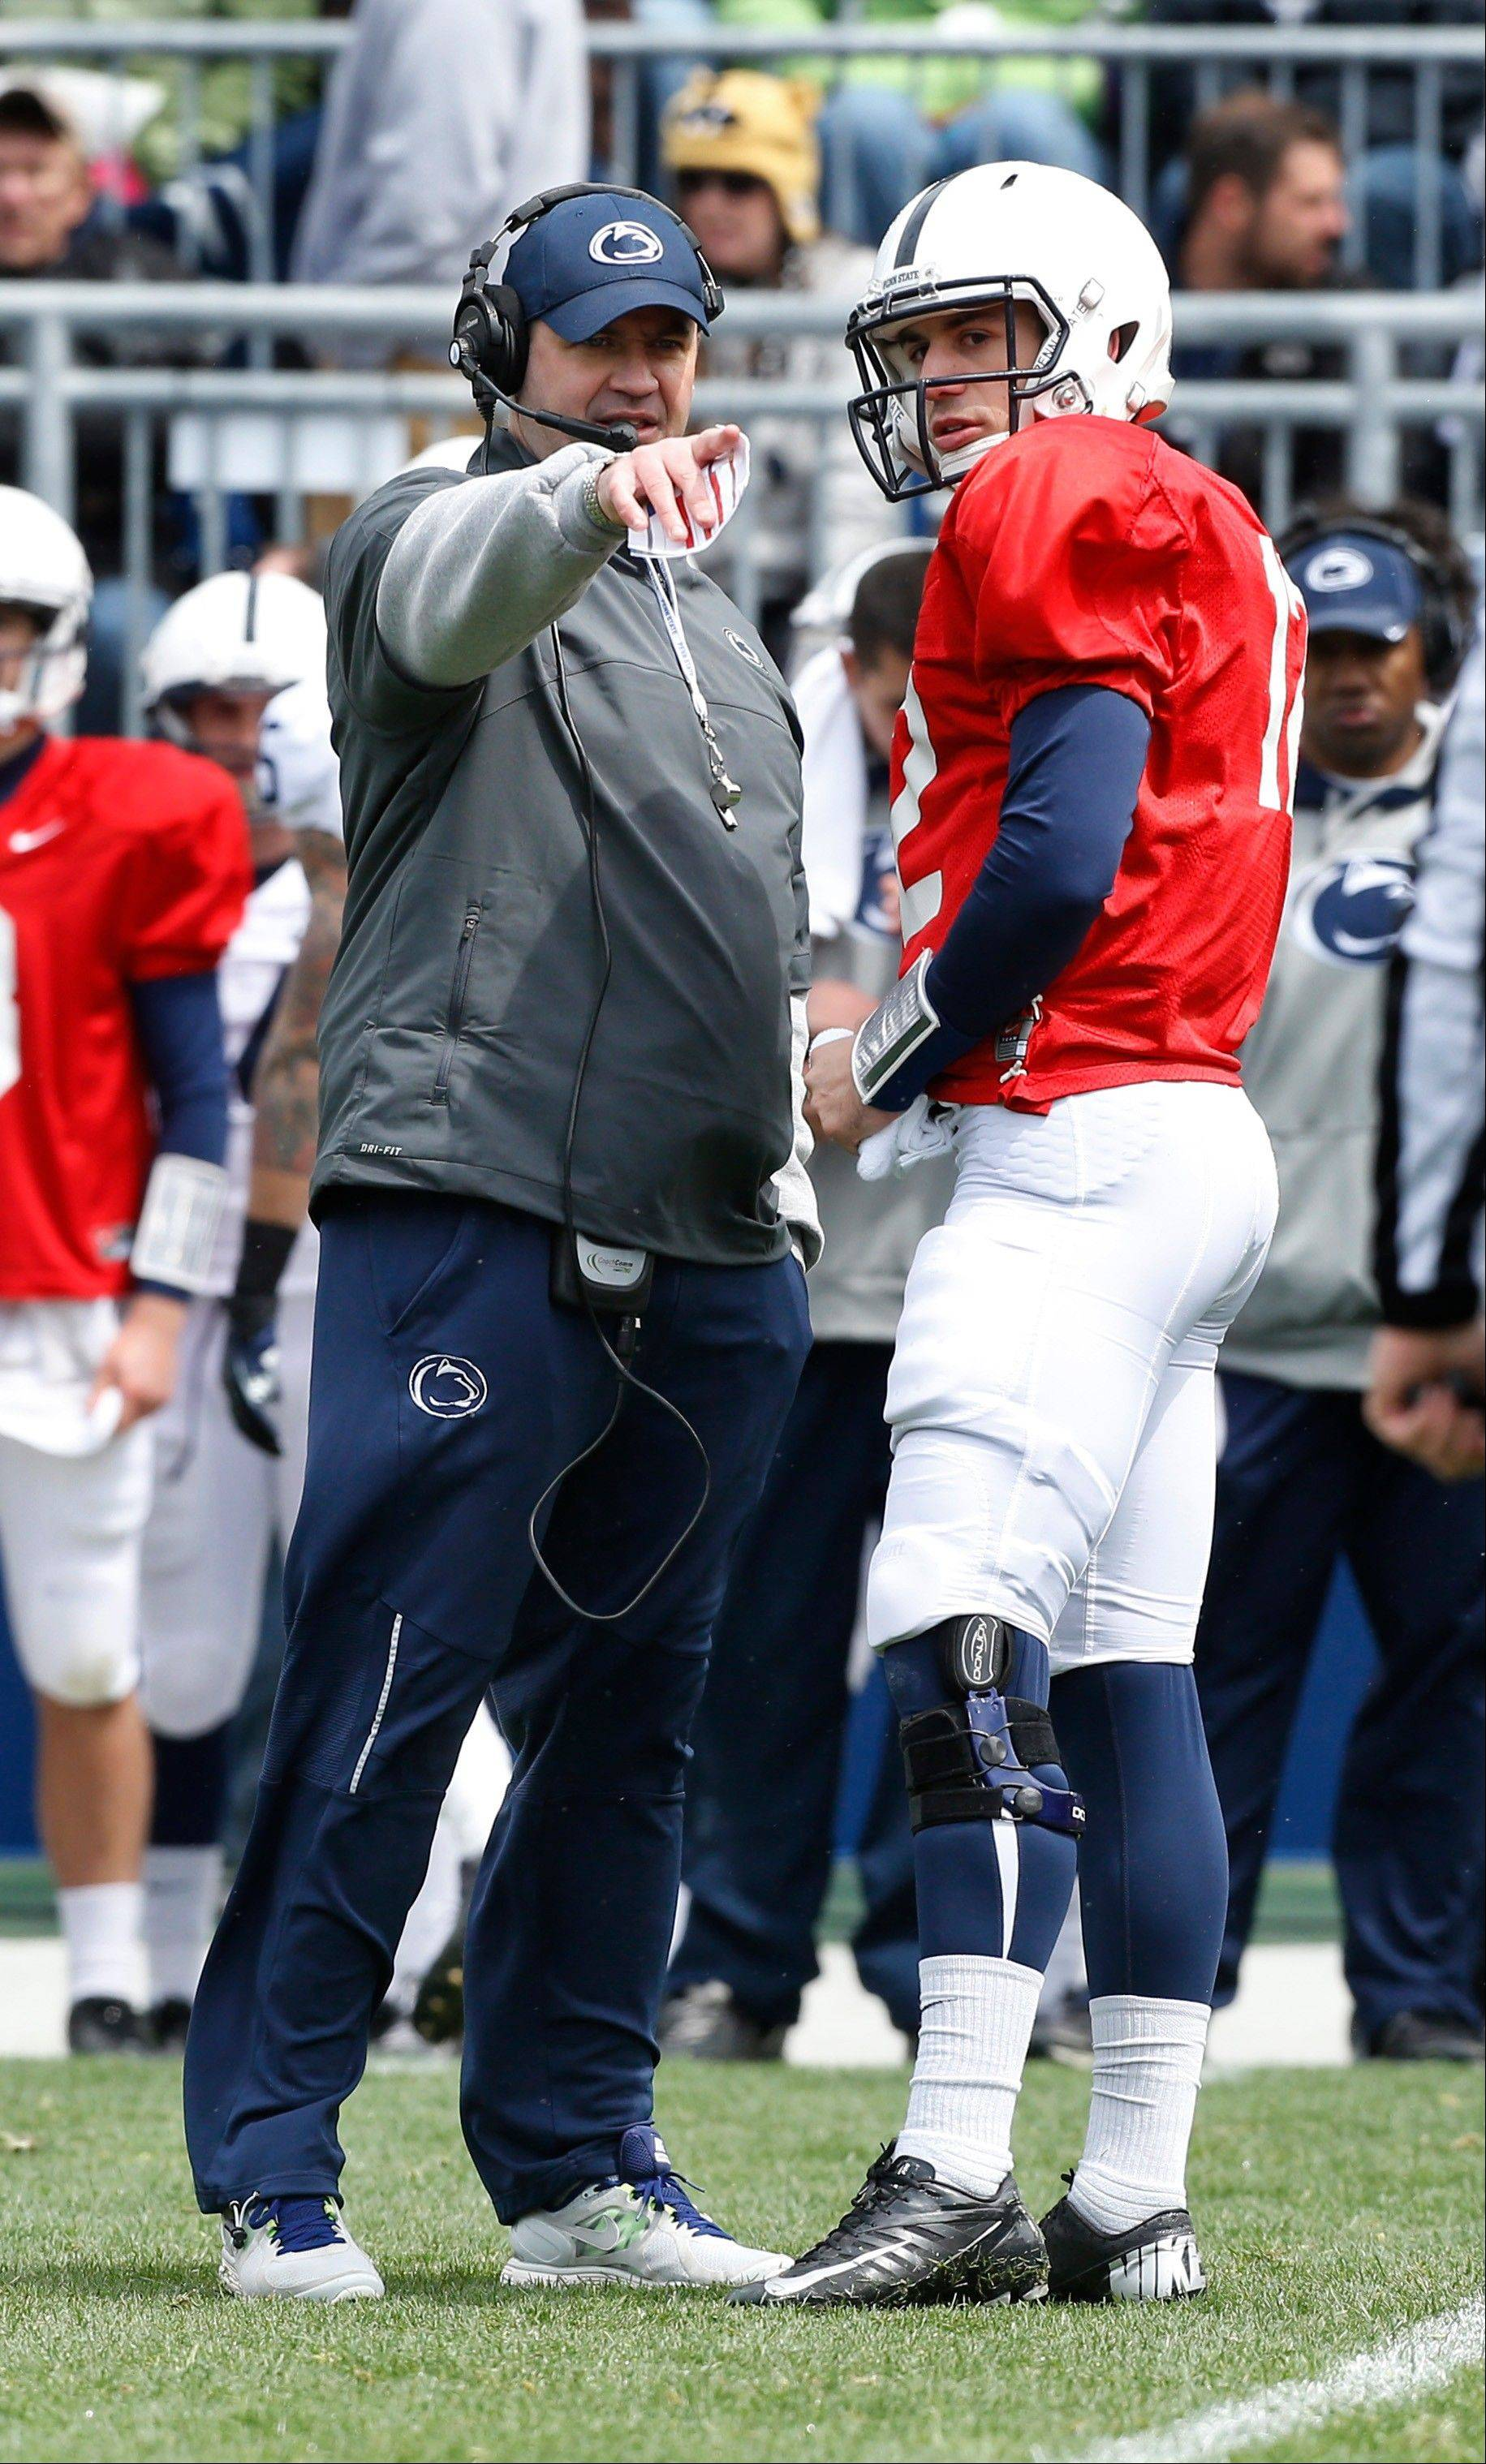 Penn State head coach Bill O'Brien talks with quarterback Steven Bench during a spring game in State College, Pa. The Nittany Lions open a season of promise Saturday against Syracuse, and the quarterback situation remains unsettled, at least in the public eye.